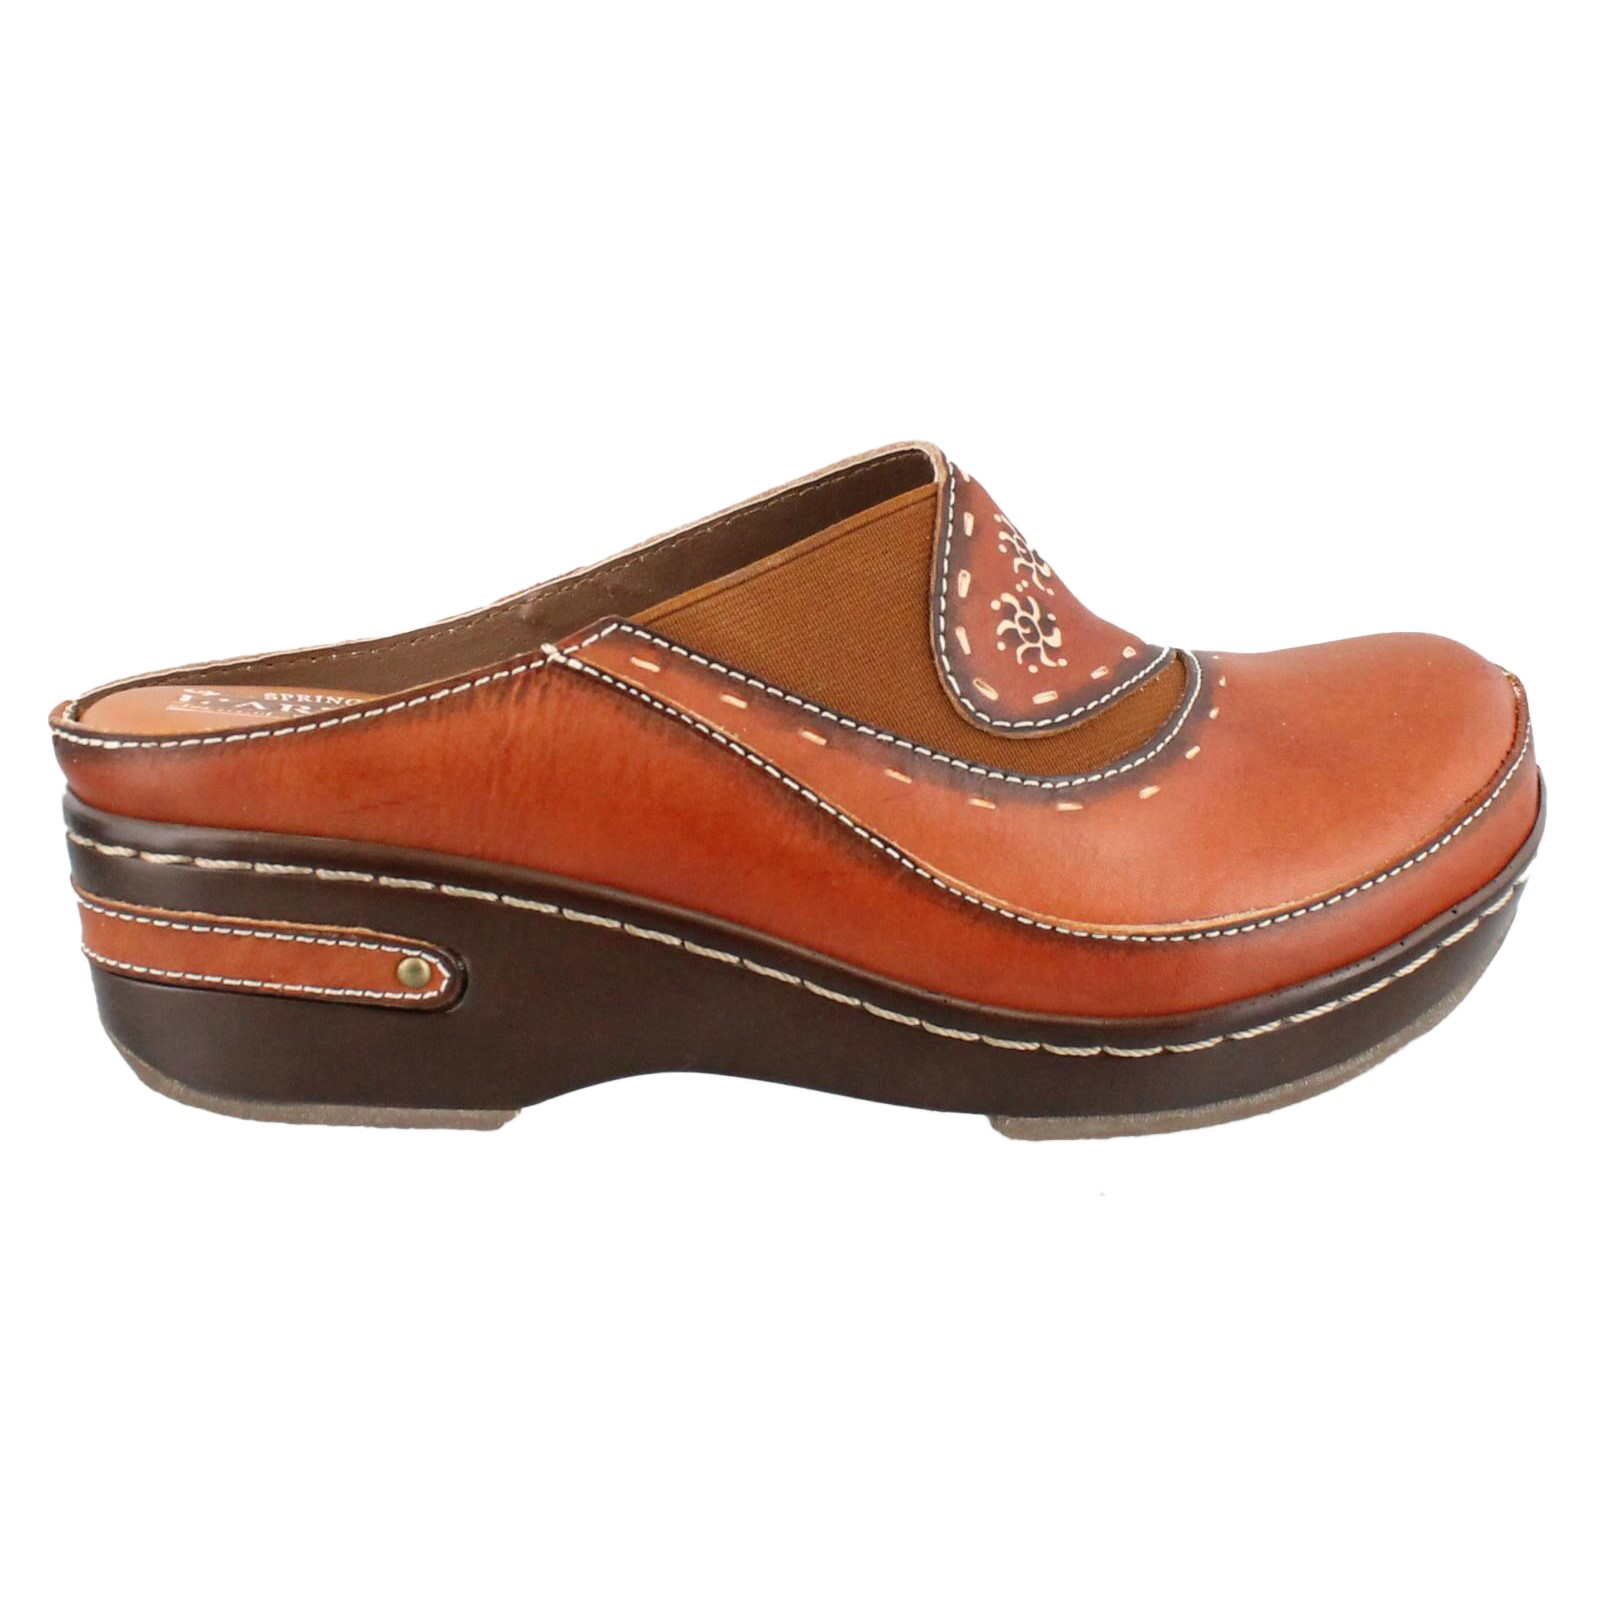 Women's Spring Step, Chino Slip on leather Clogs